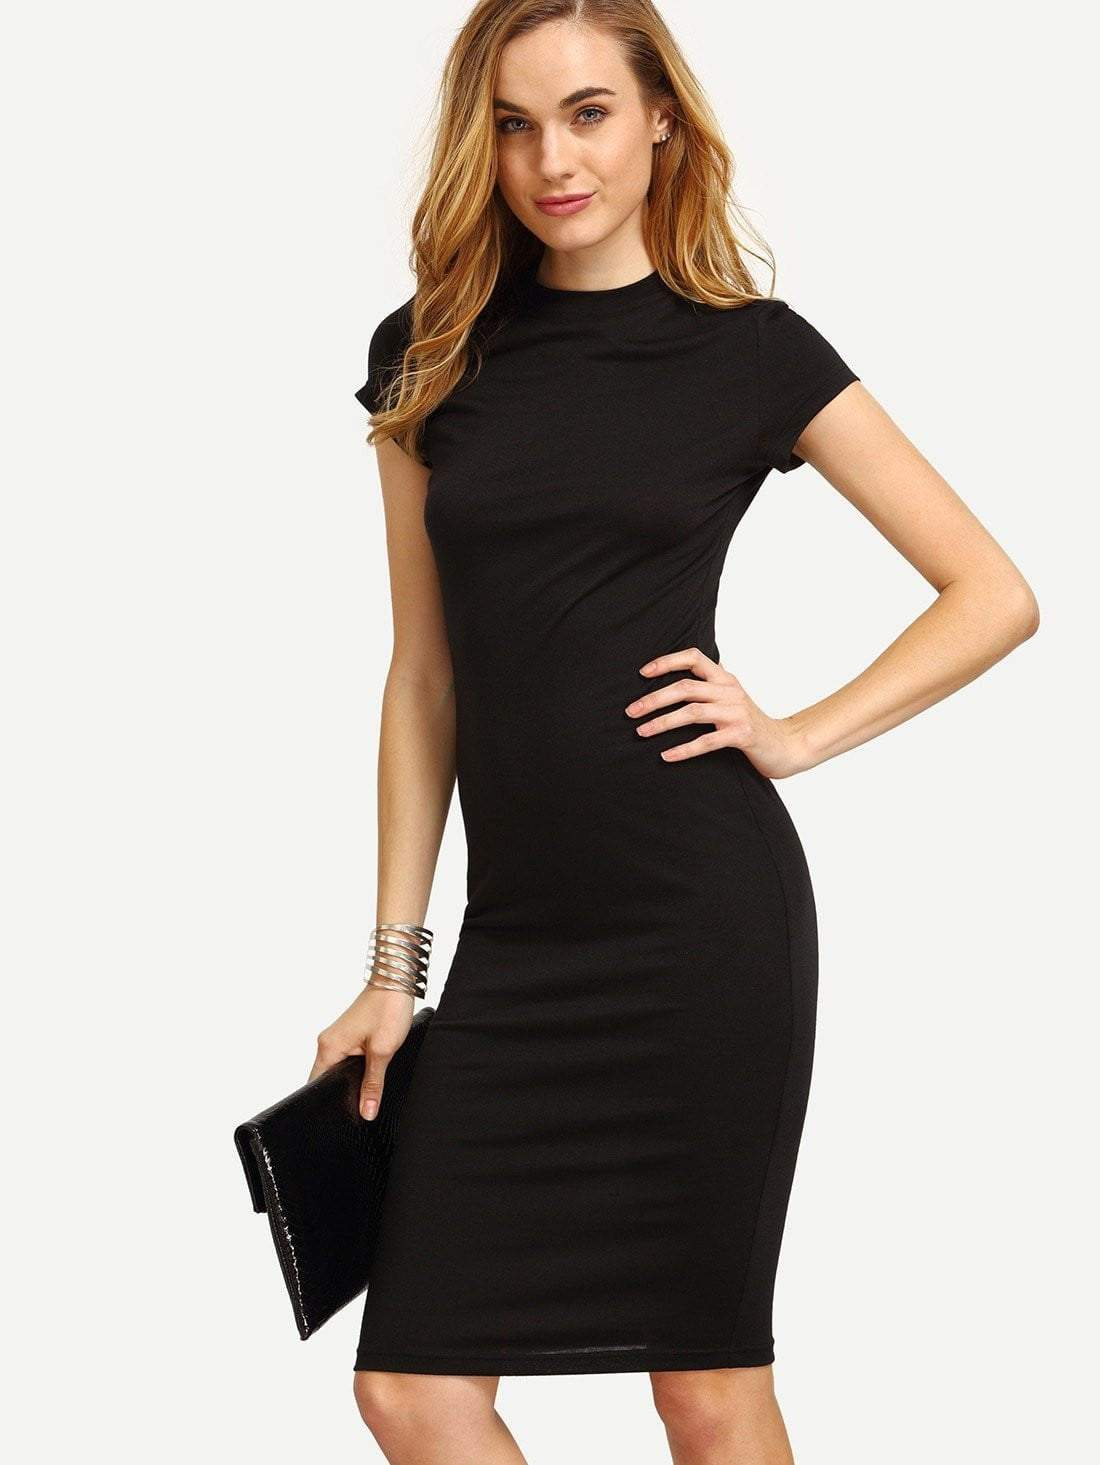 Black Cap Sleeve Crew Neck Sheath Dress - zooomberg